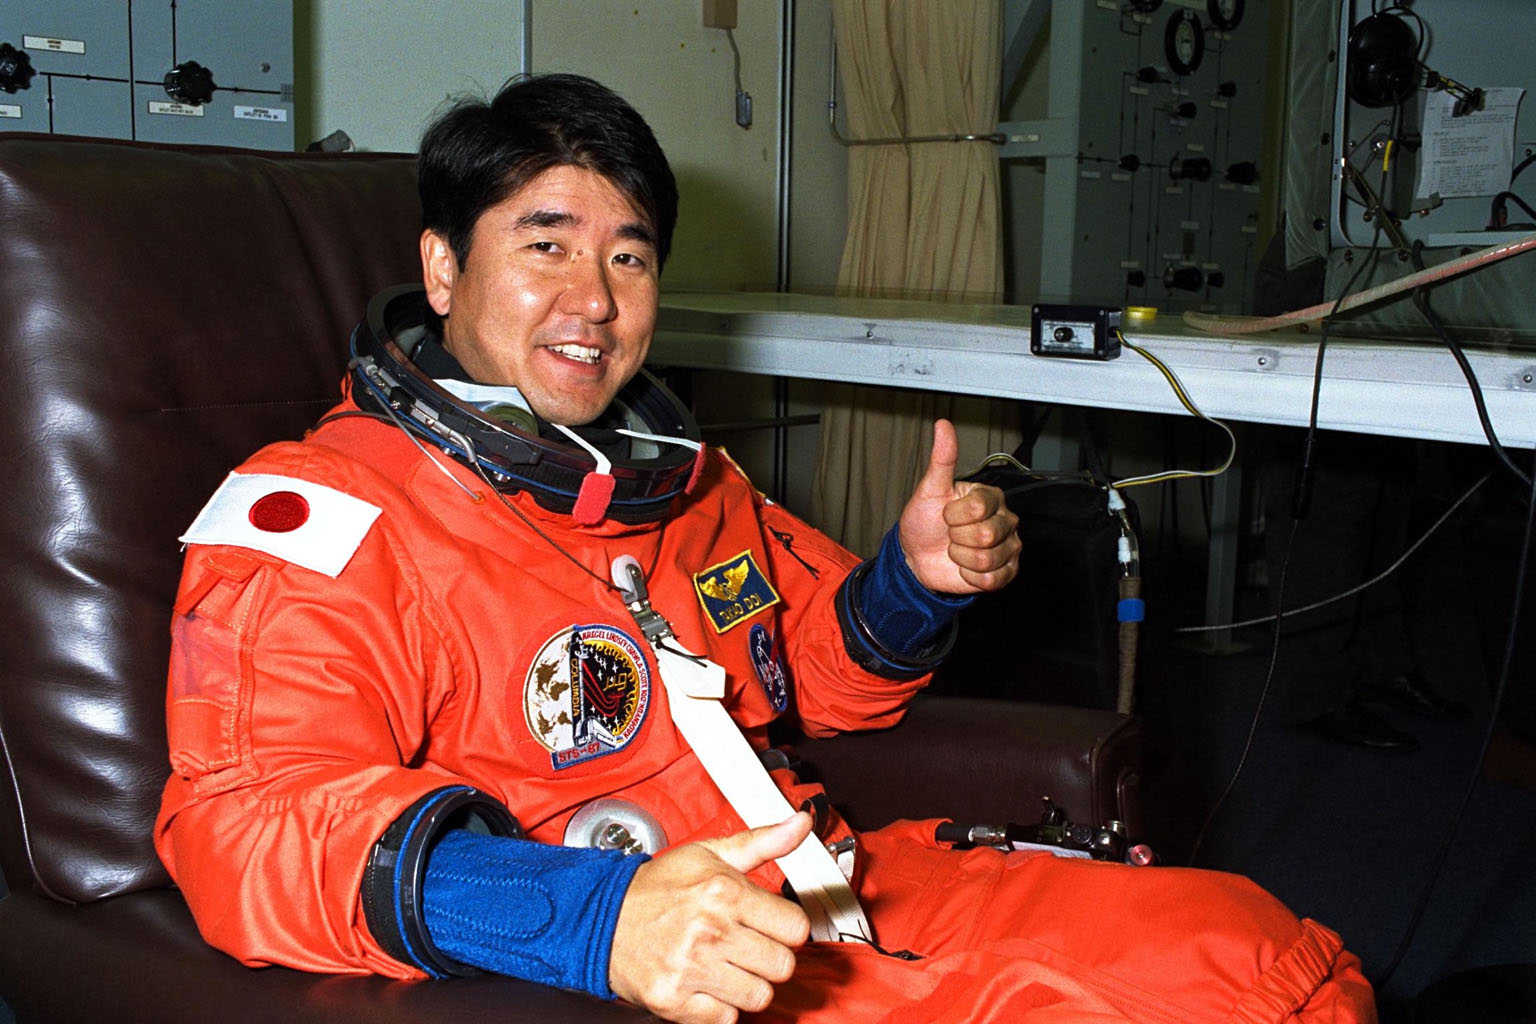 STS-87 Mission Specialist Takao Doi, Ph.D., of the National Space Development Agency of Japan, gives a ?thumbs up? in his launch and entry suit in the Operations and Checkout Building. He and the five other crew members will depart shortly for Launch Pad 39B, where the Space Shuttle Columbia awaits liftoff on a 16-day mission to perform microgravity and solar research. Dr. Doi is scheduled to perform an extravehicular activity spacewalk with Mission Specialist Winston Scott during STS-87